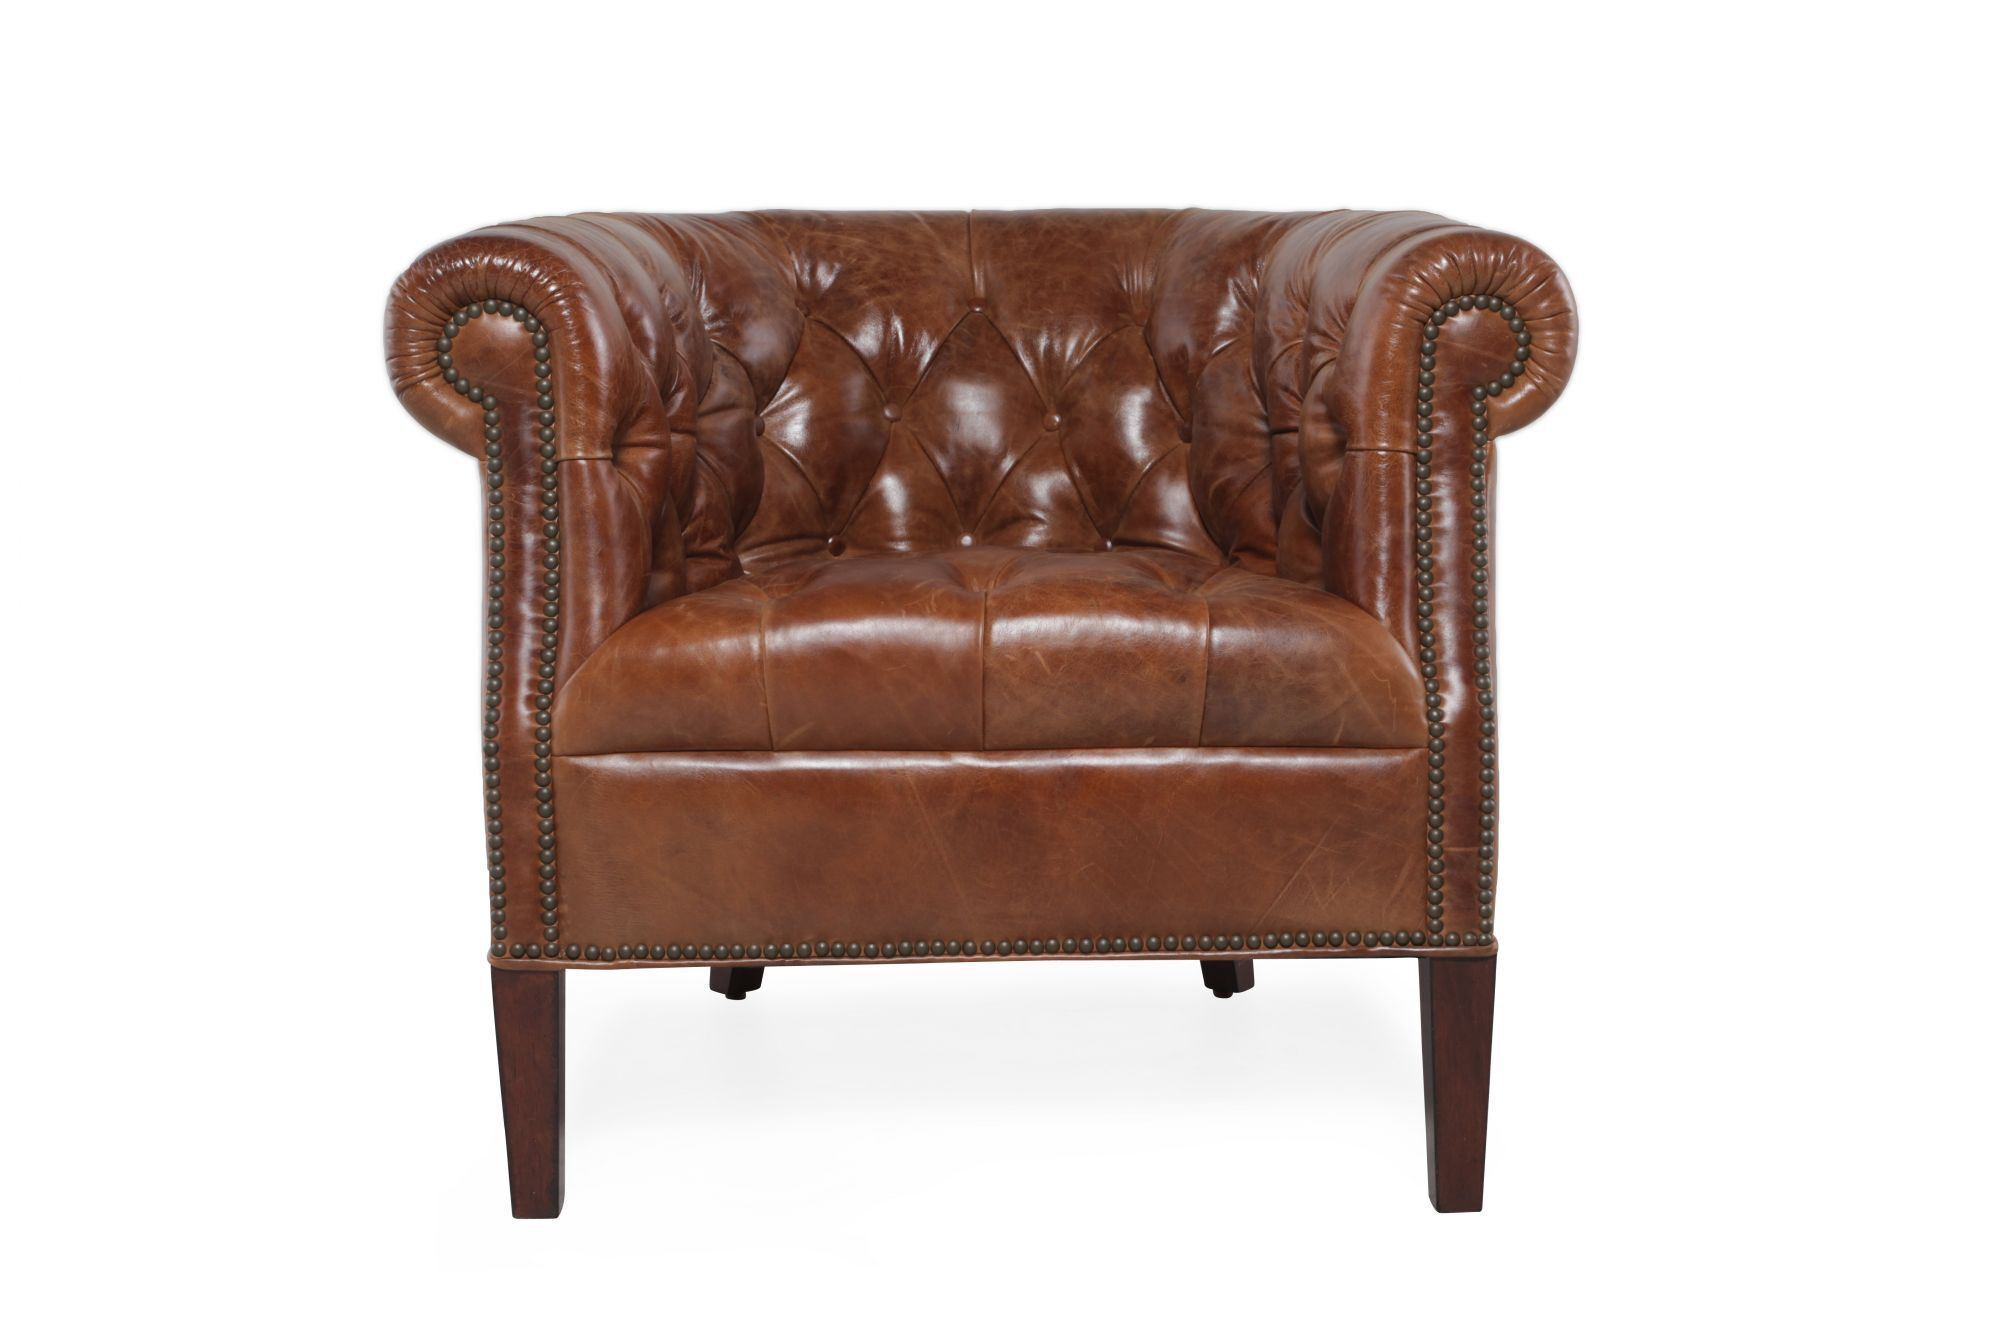 leather tub chair rubber wood table and chairs button tufted in chestnut brown mathis brothers furniture